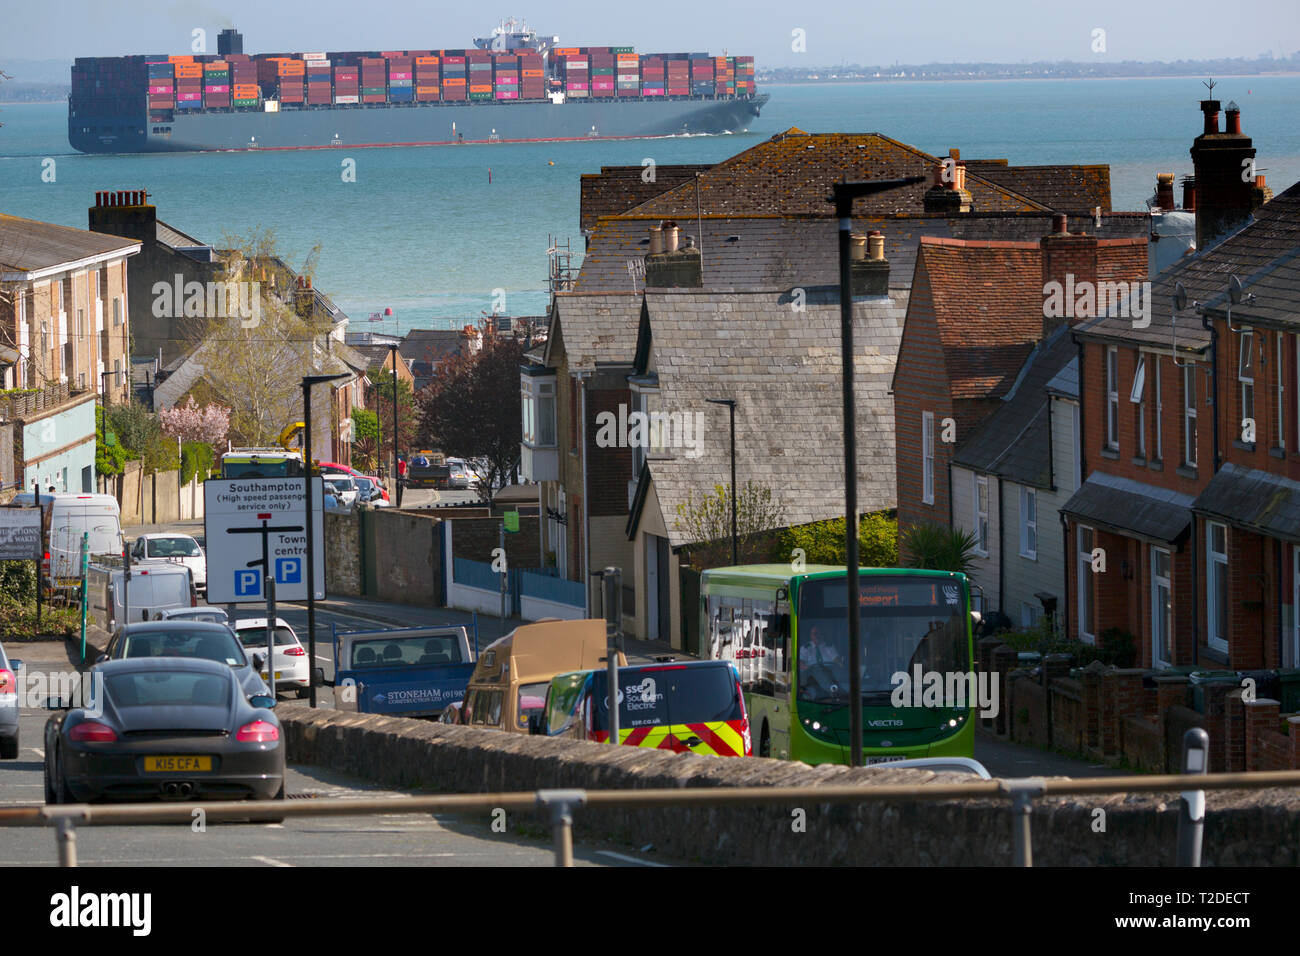 Container,Ship,Madrid,Express,Southampton,Port,Harbour,Escourt,Launch,services,Master,departure,water,The Solent,Cowes,Isle of Wight,UK, - Stock Image